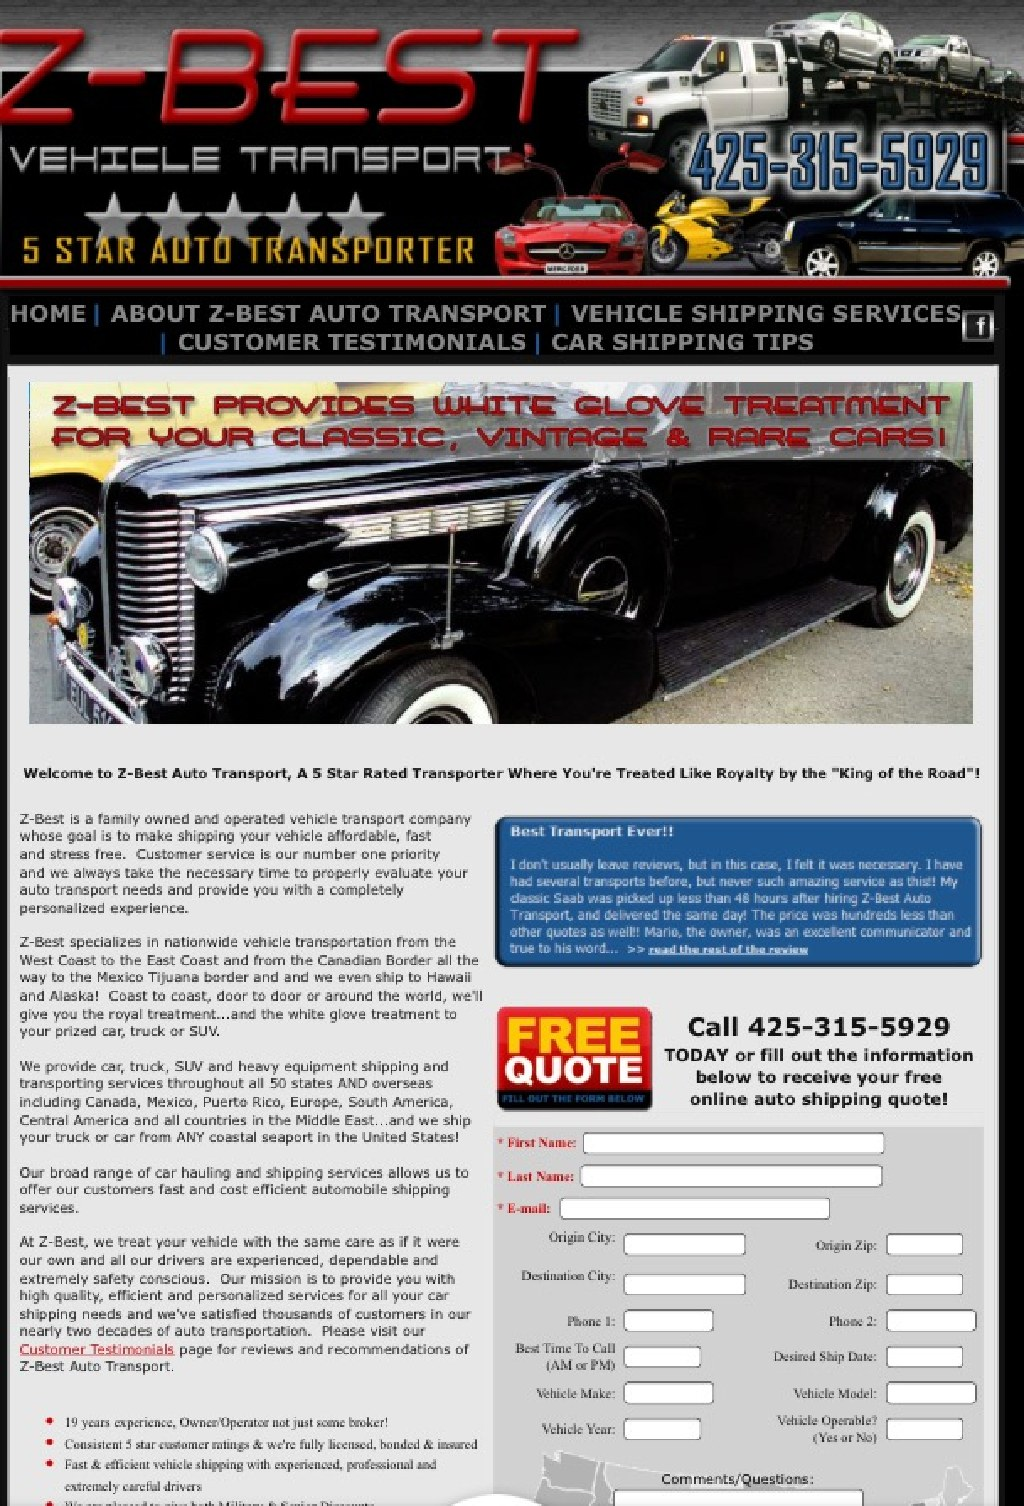 Auto Shipping, Car Shipping services of all type of vehicle statewide, nationwide and worldwide